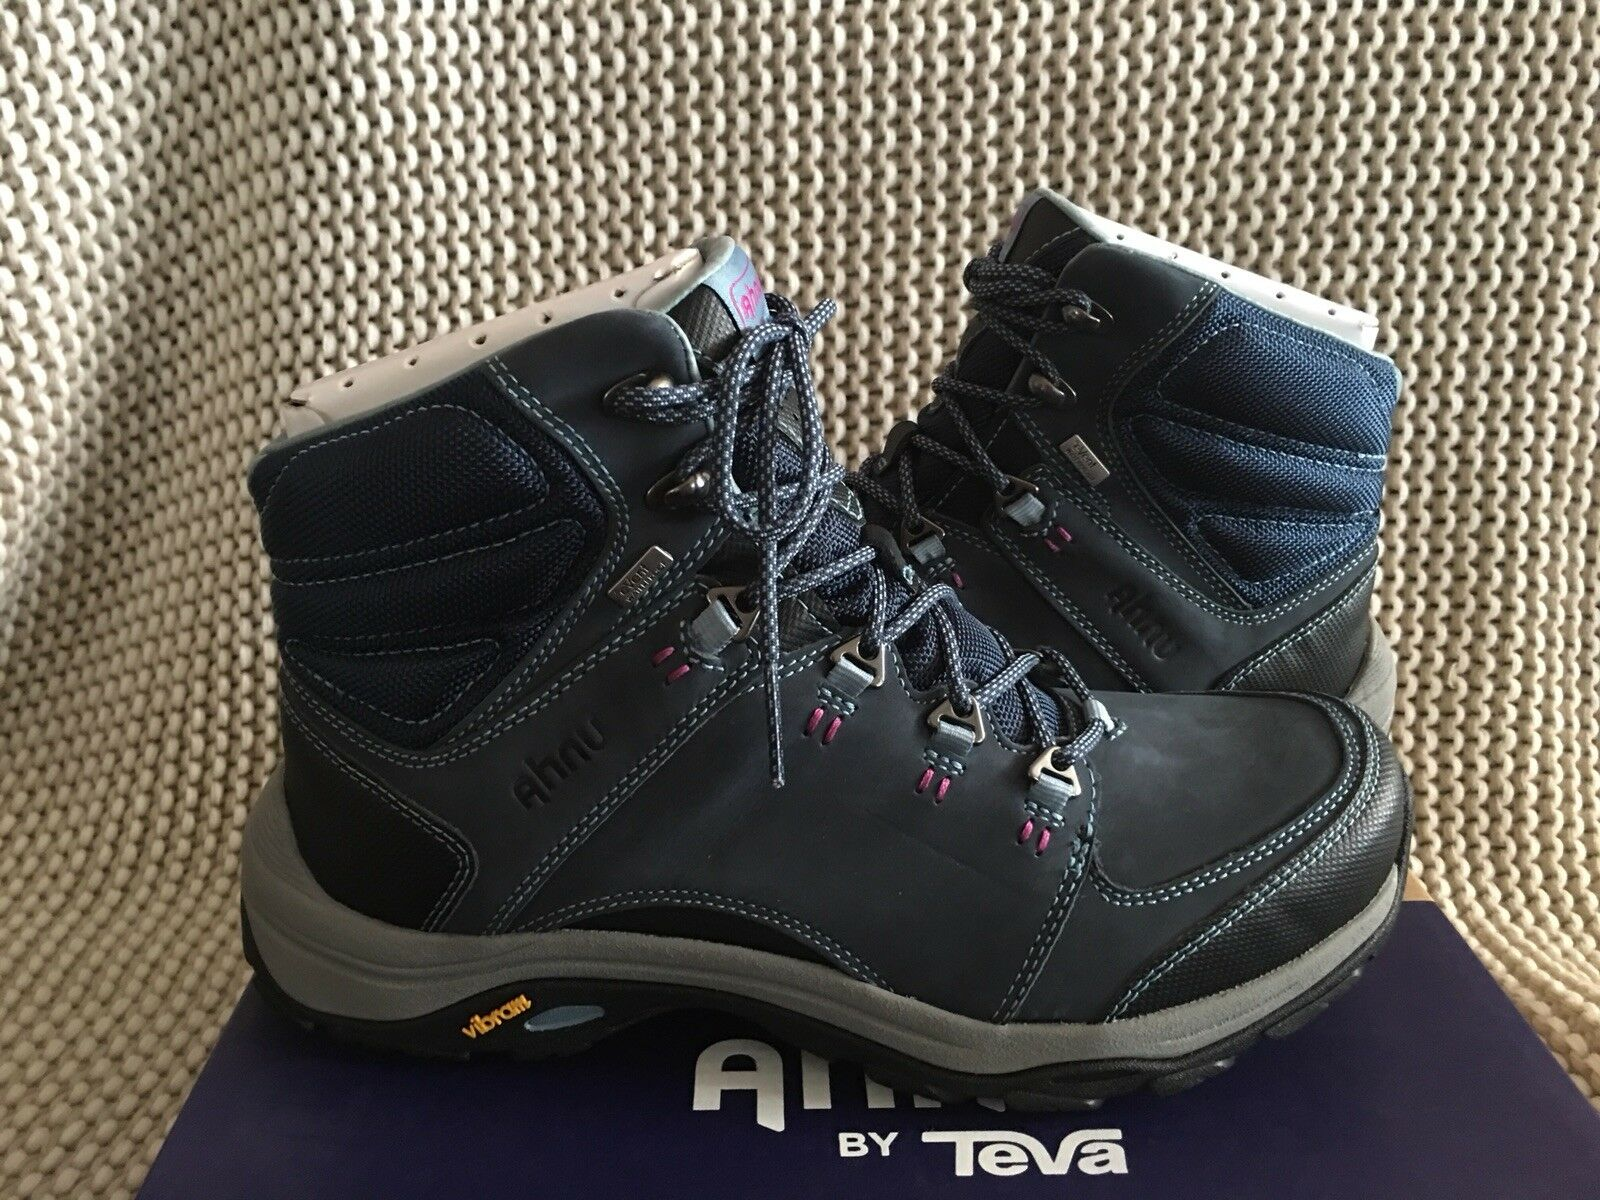 AHNU MONTARA III BOOT EVENT blueE SPELL LEATHER HIKING WOMEN'S BOOTS SIZE US 9.5